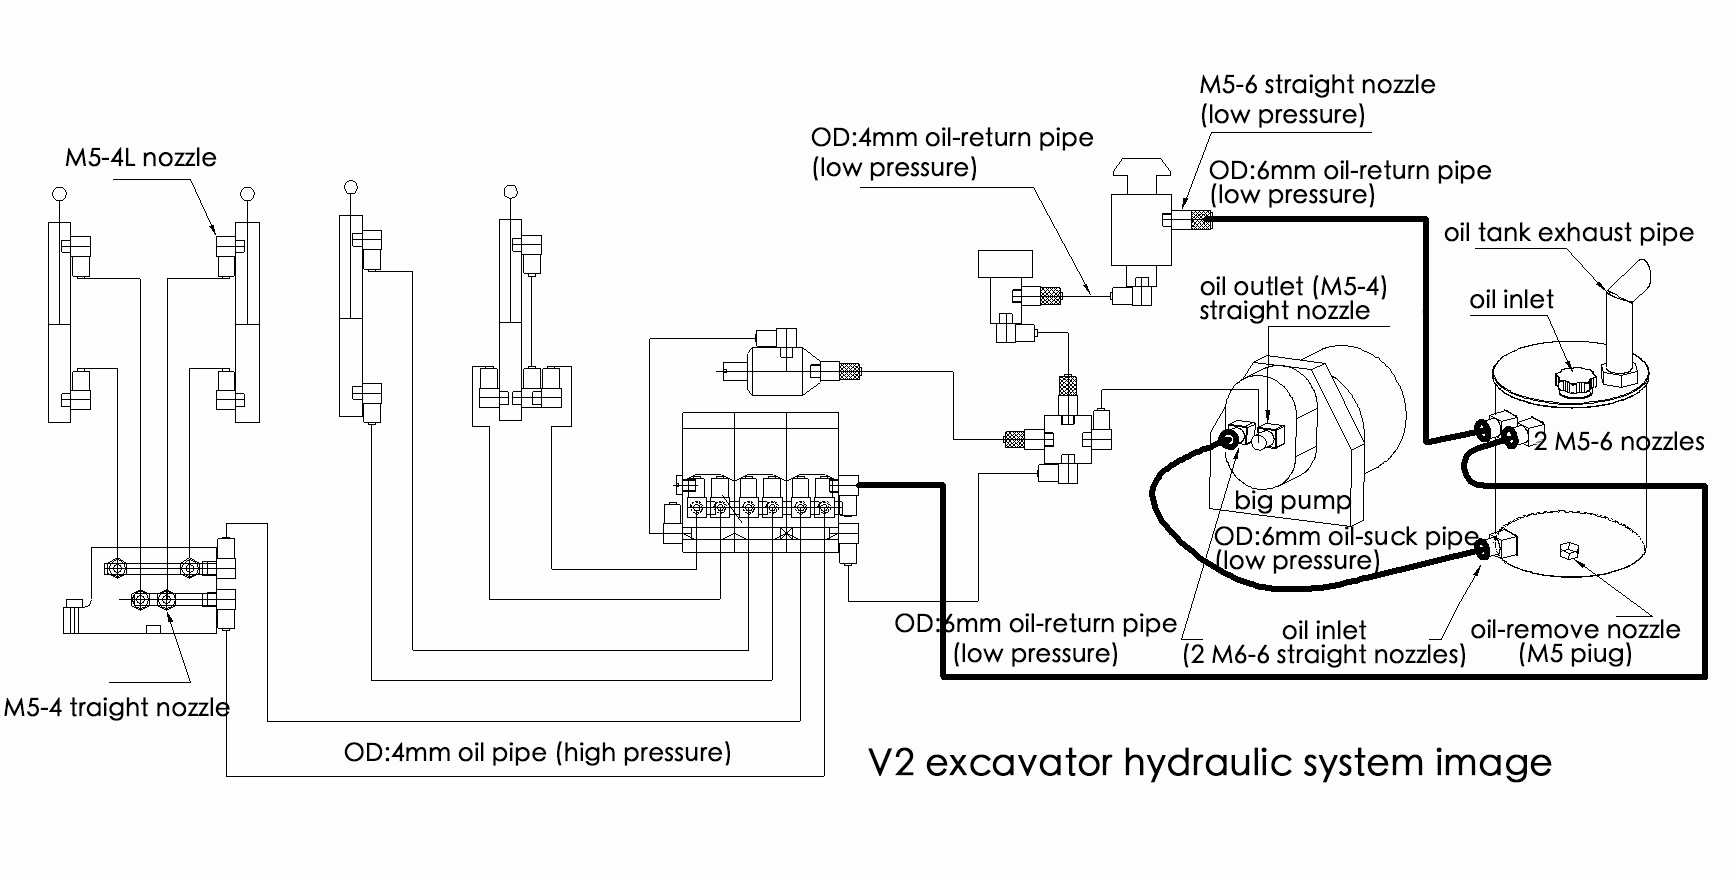 12v hydraulic pump wiring diagram Download-Full Size of Wiring Diagram 12  Volt Hydraulic Pump